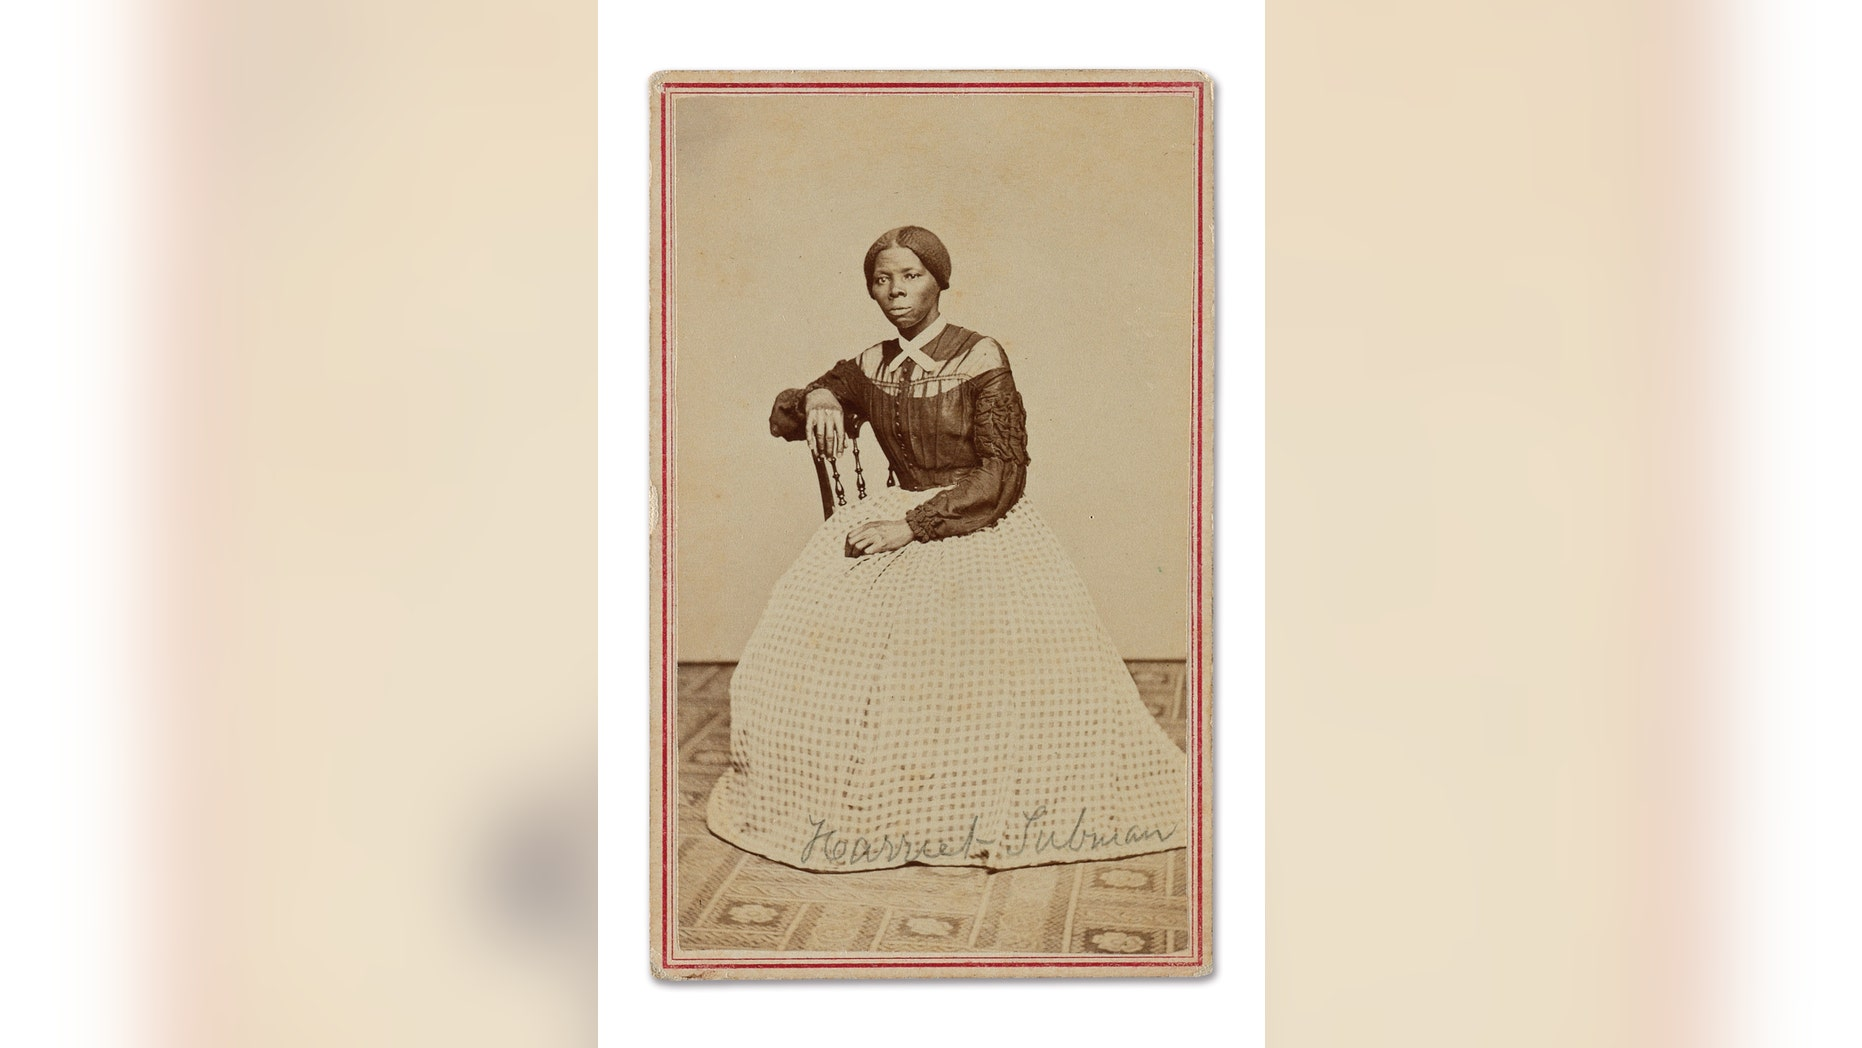 The newly surfaced photo of Harriet Tubman (Courtesy of Swann Auction Galleries).